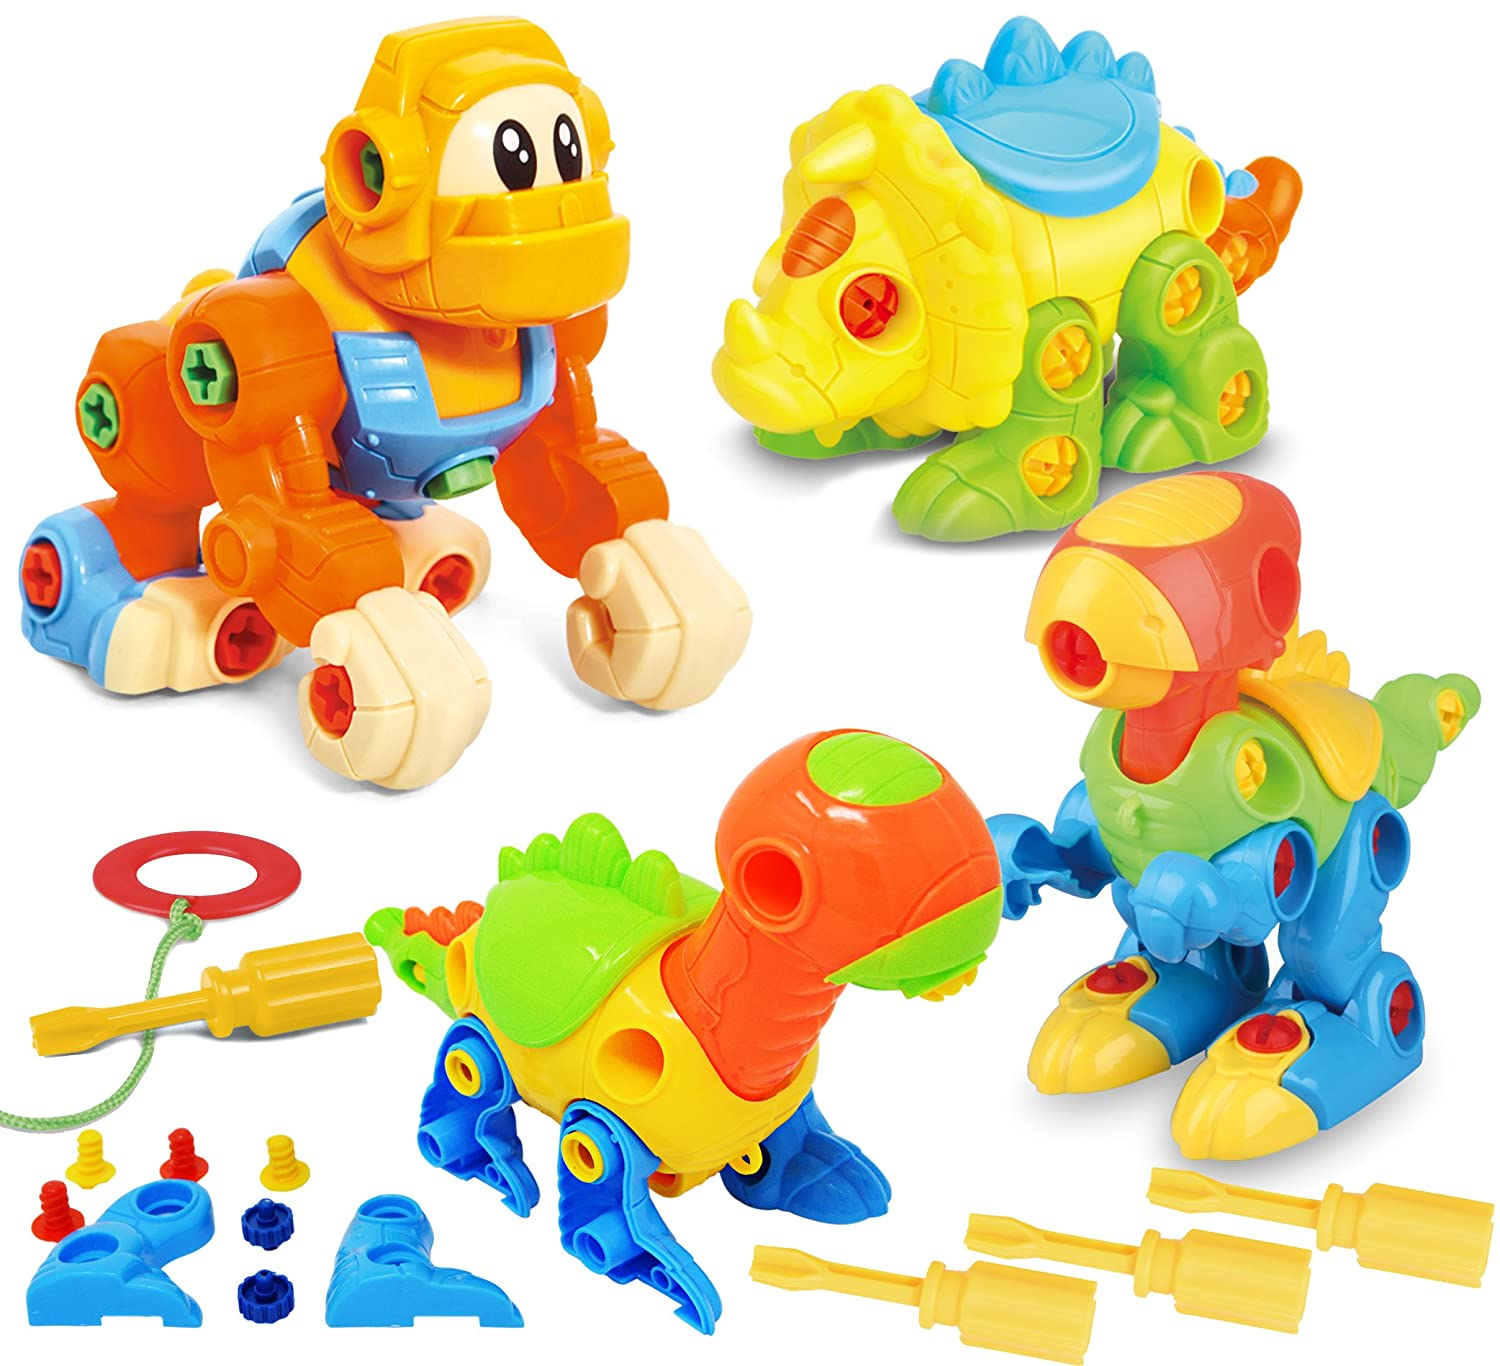 Joyin Toy Dinosaur Toys Take Apart Toys (Pack of 4) - Construction Engineering Building Play Set Review